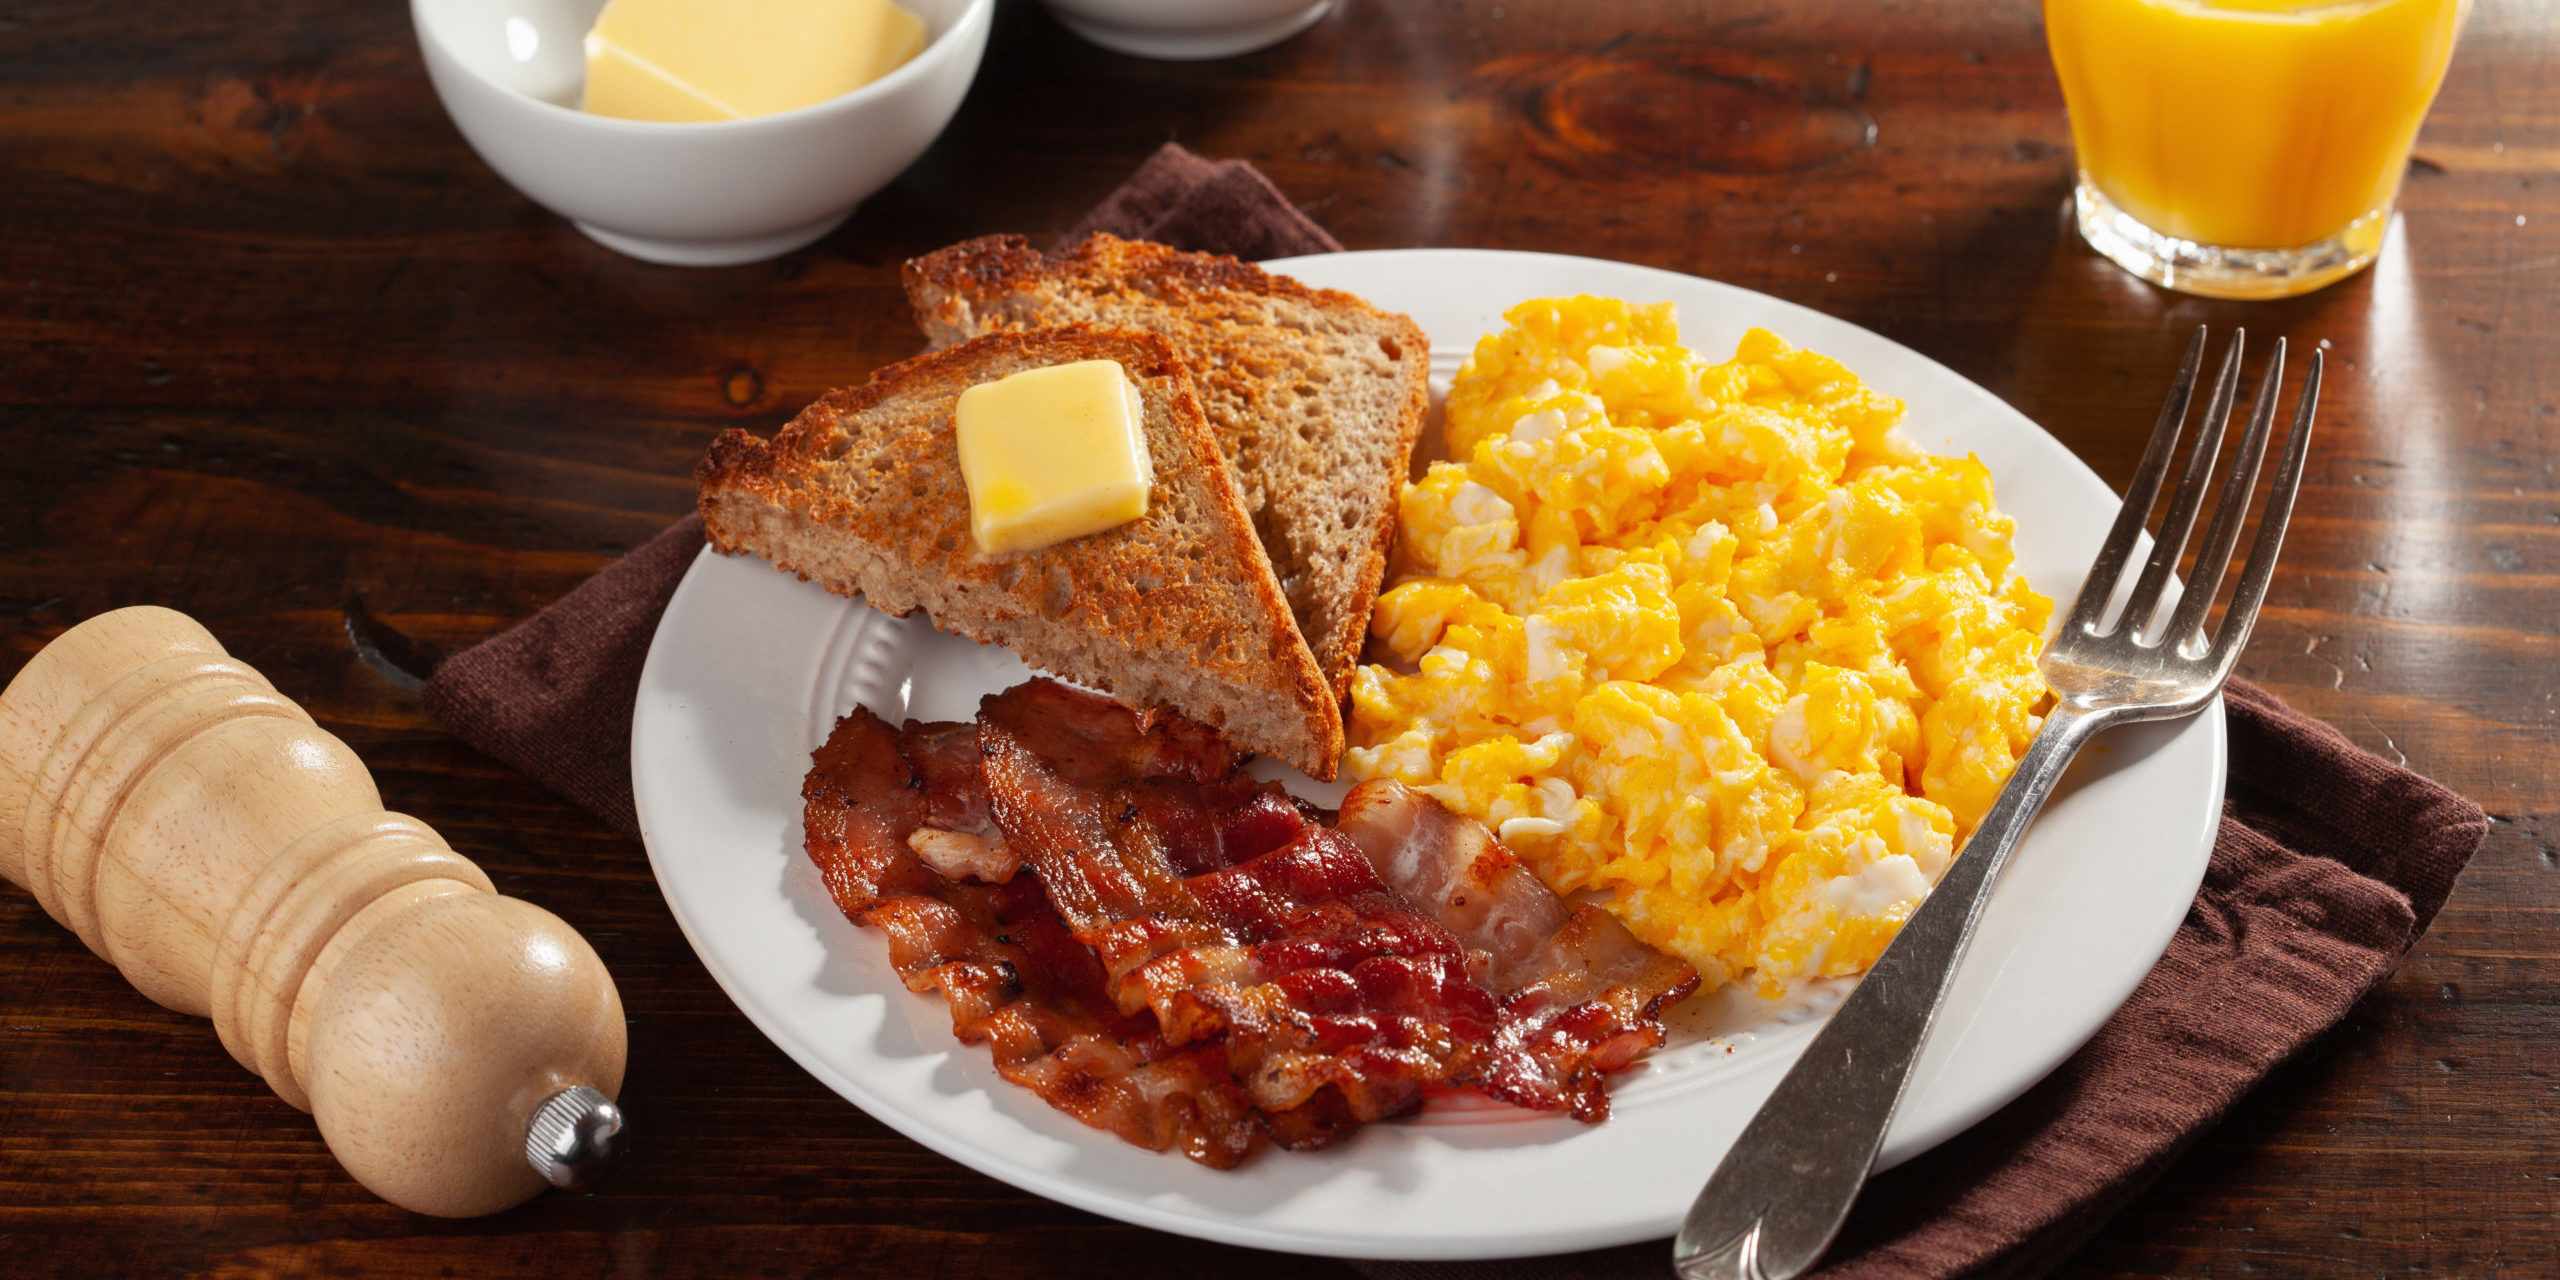 traditional scrambled egg breakfast with bacon and toast